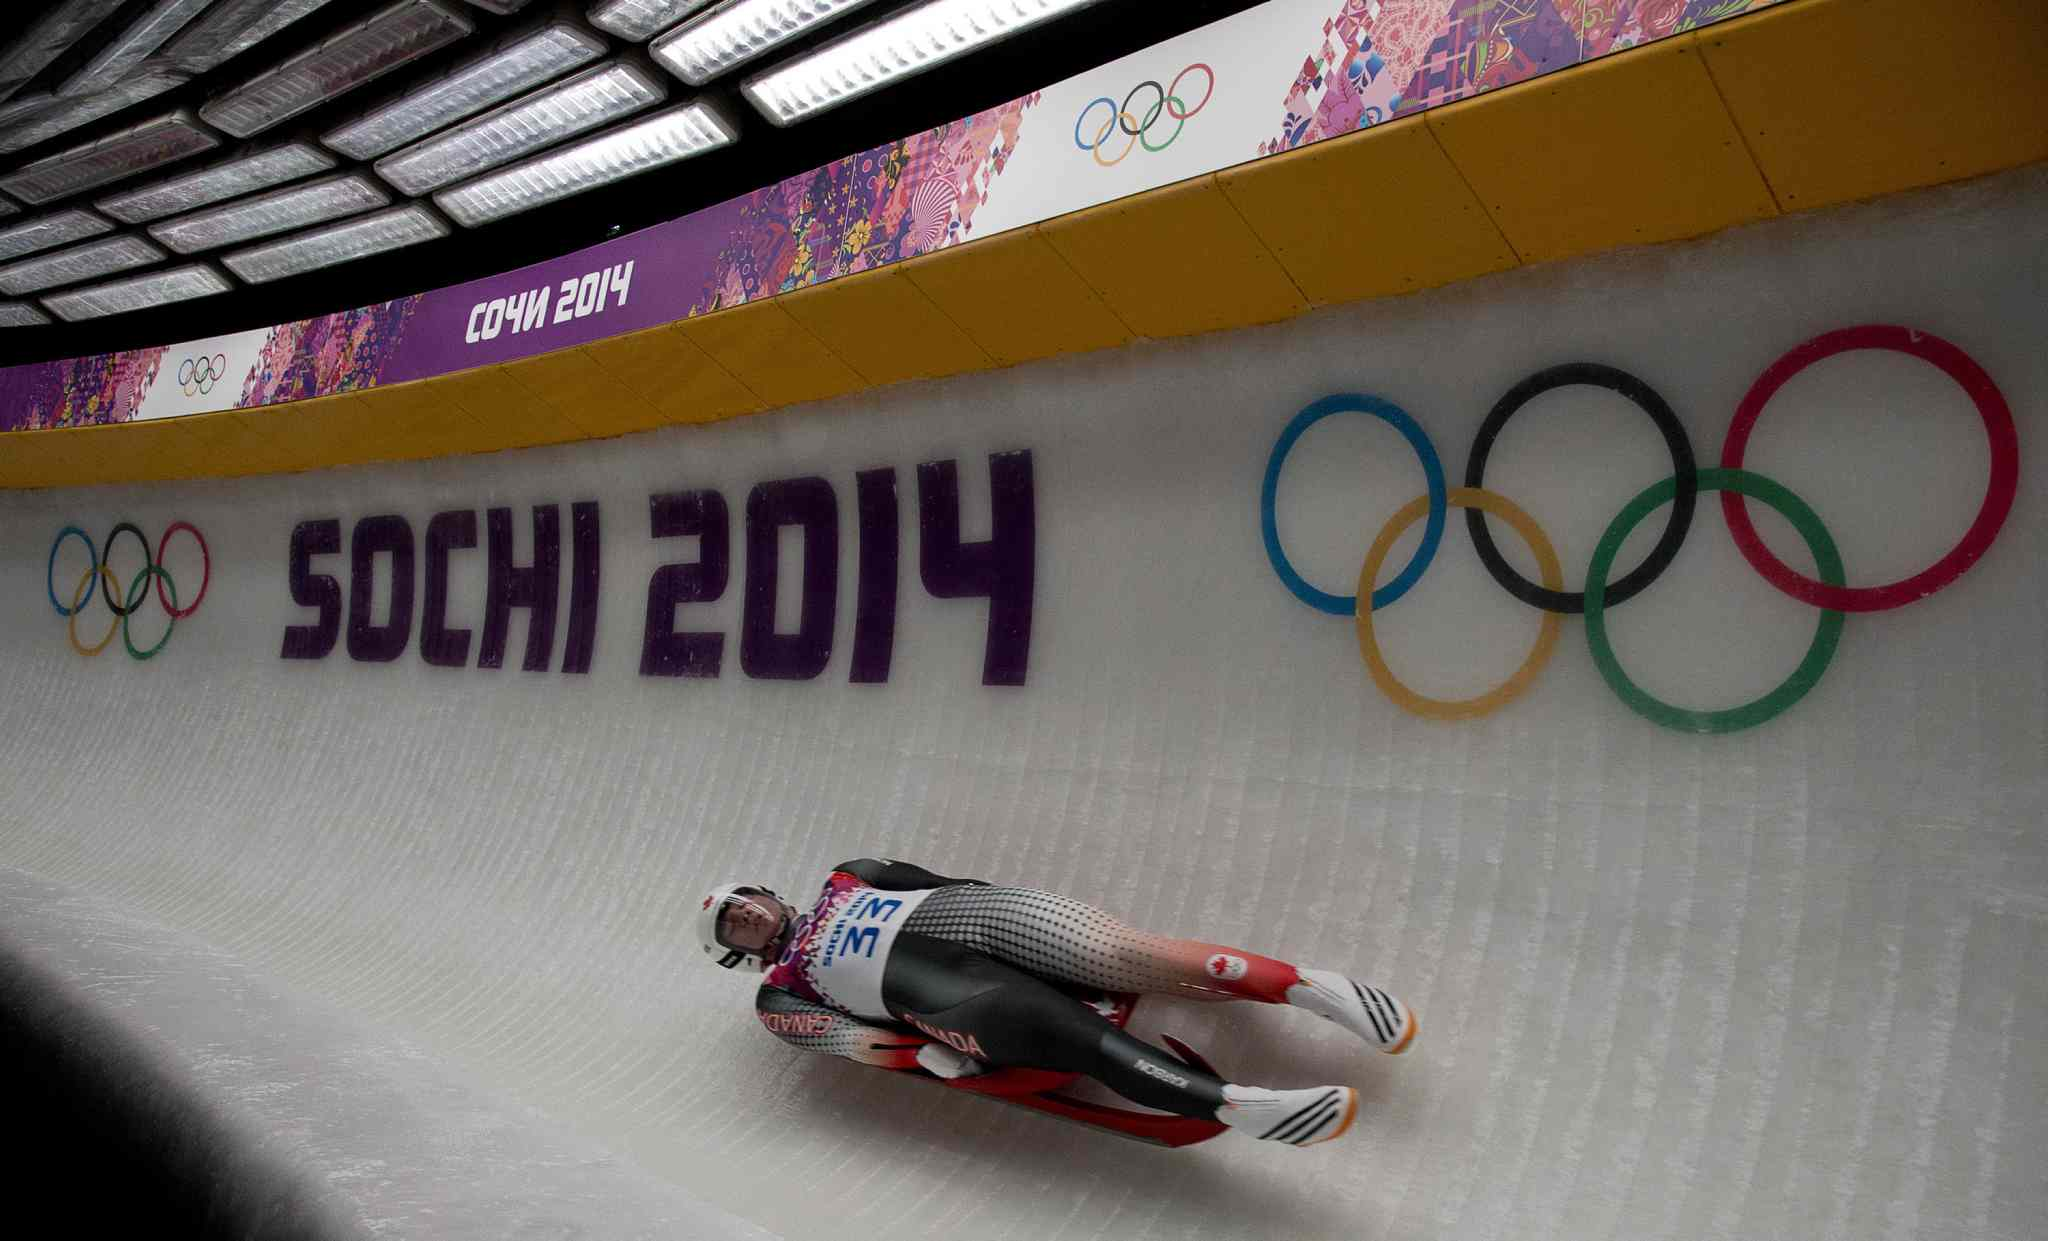 Canada's Mitchel Malyk, of Calgary, races in the third run of the men's single luge at the Sochi Winter Olympics.